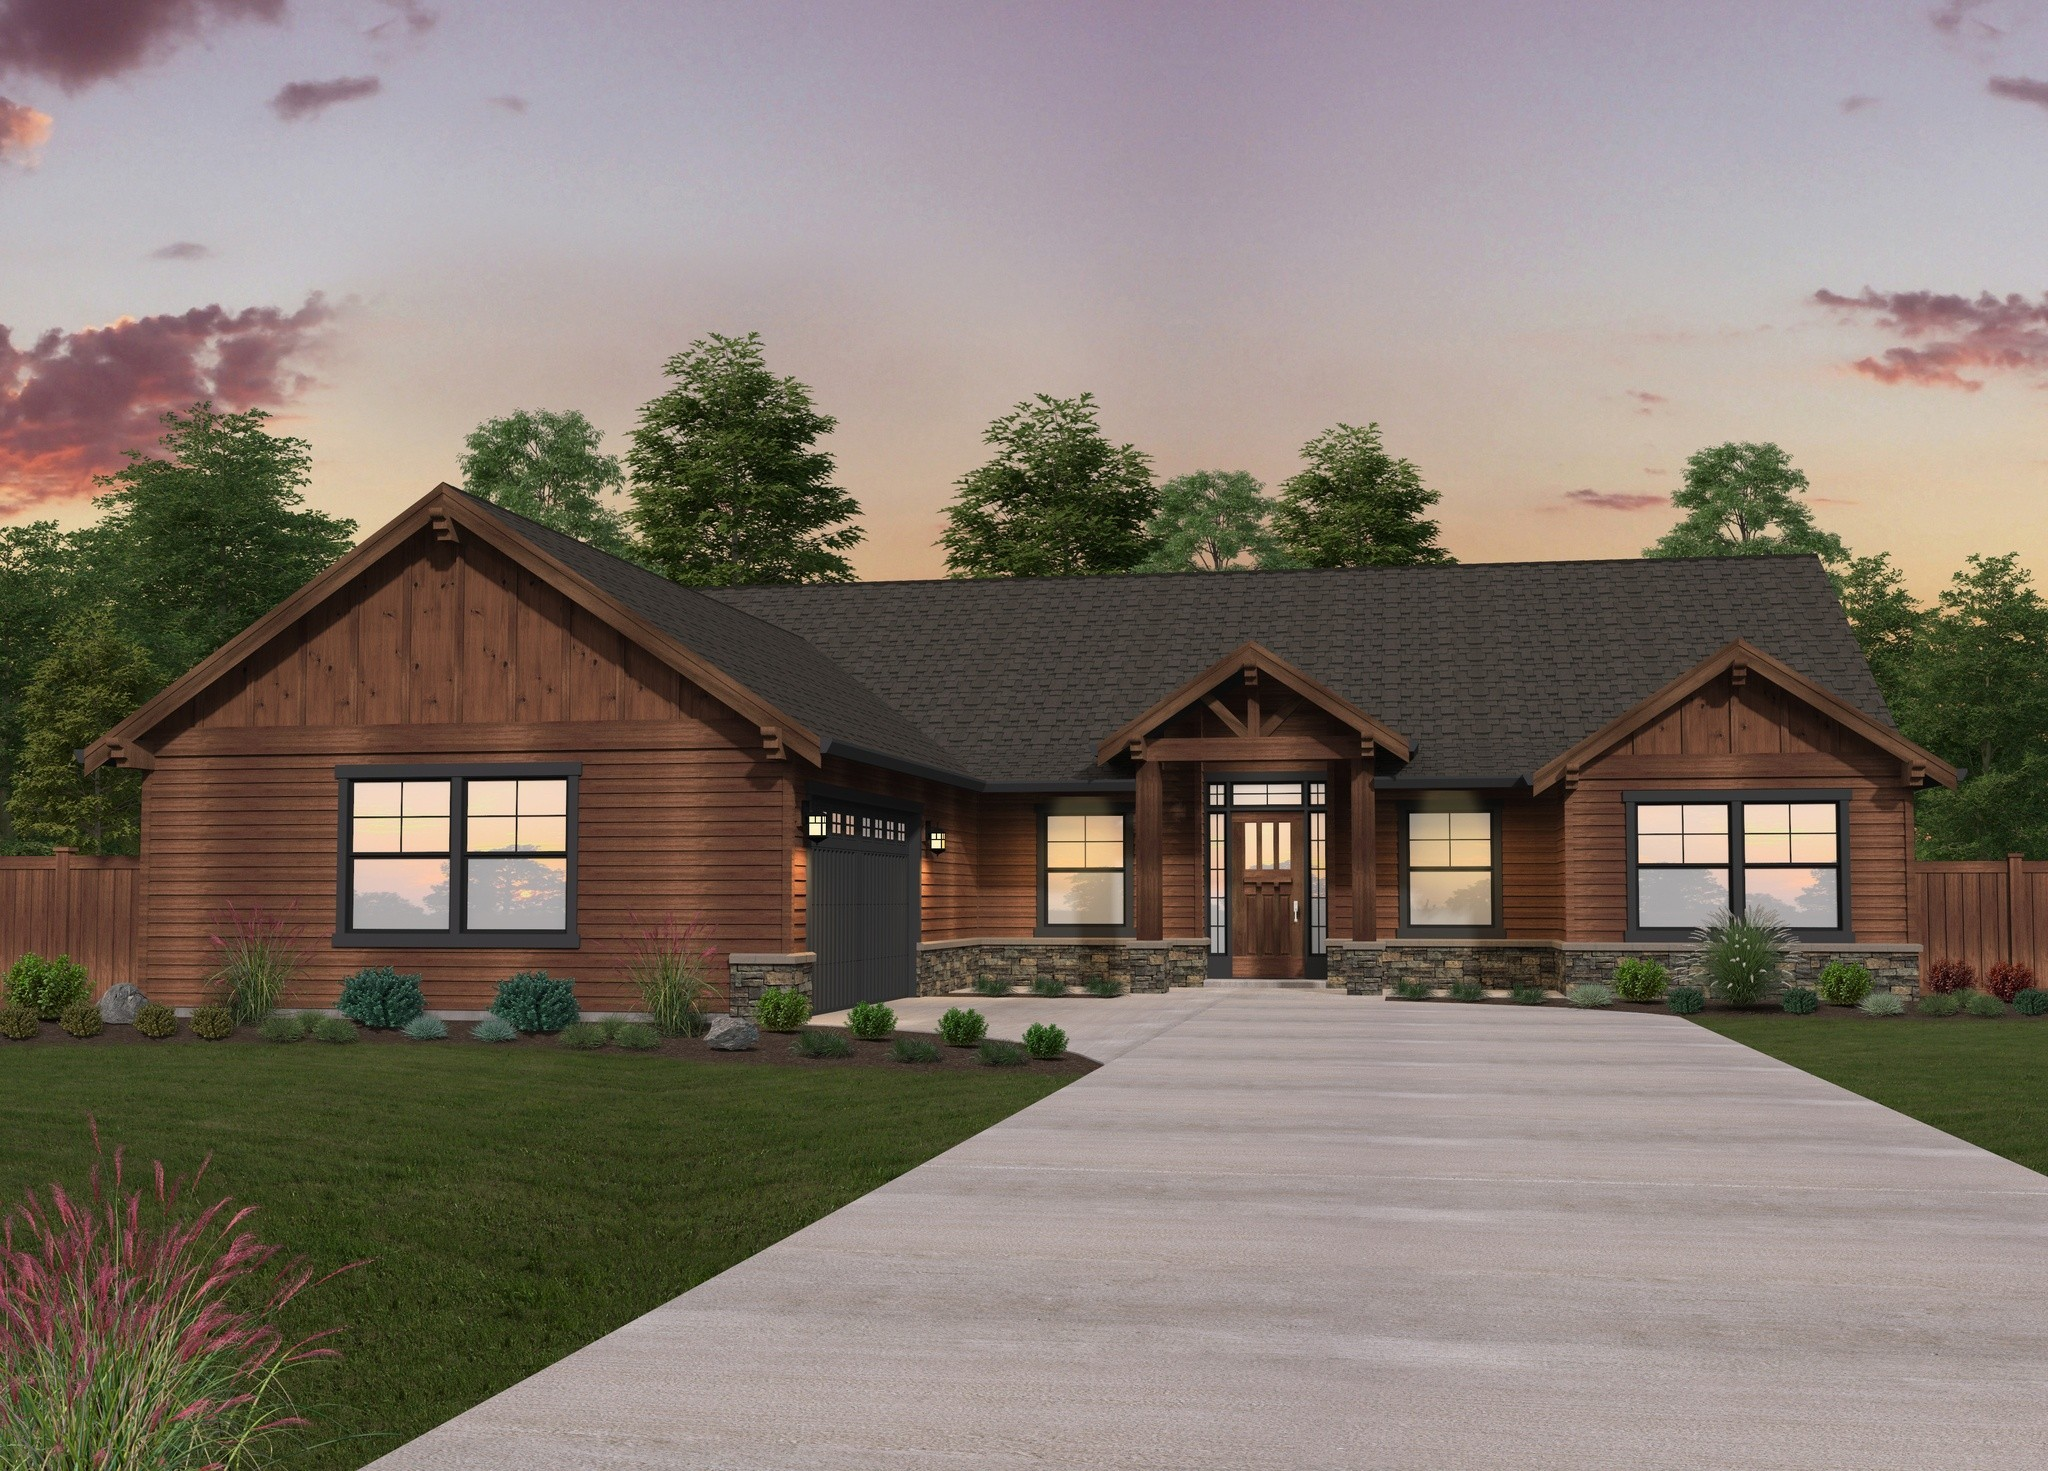 Double b ranch single story lodge house plan by mark stewart for Single ranchers